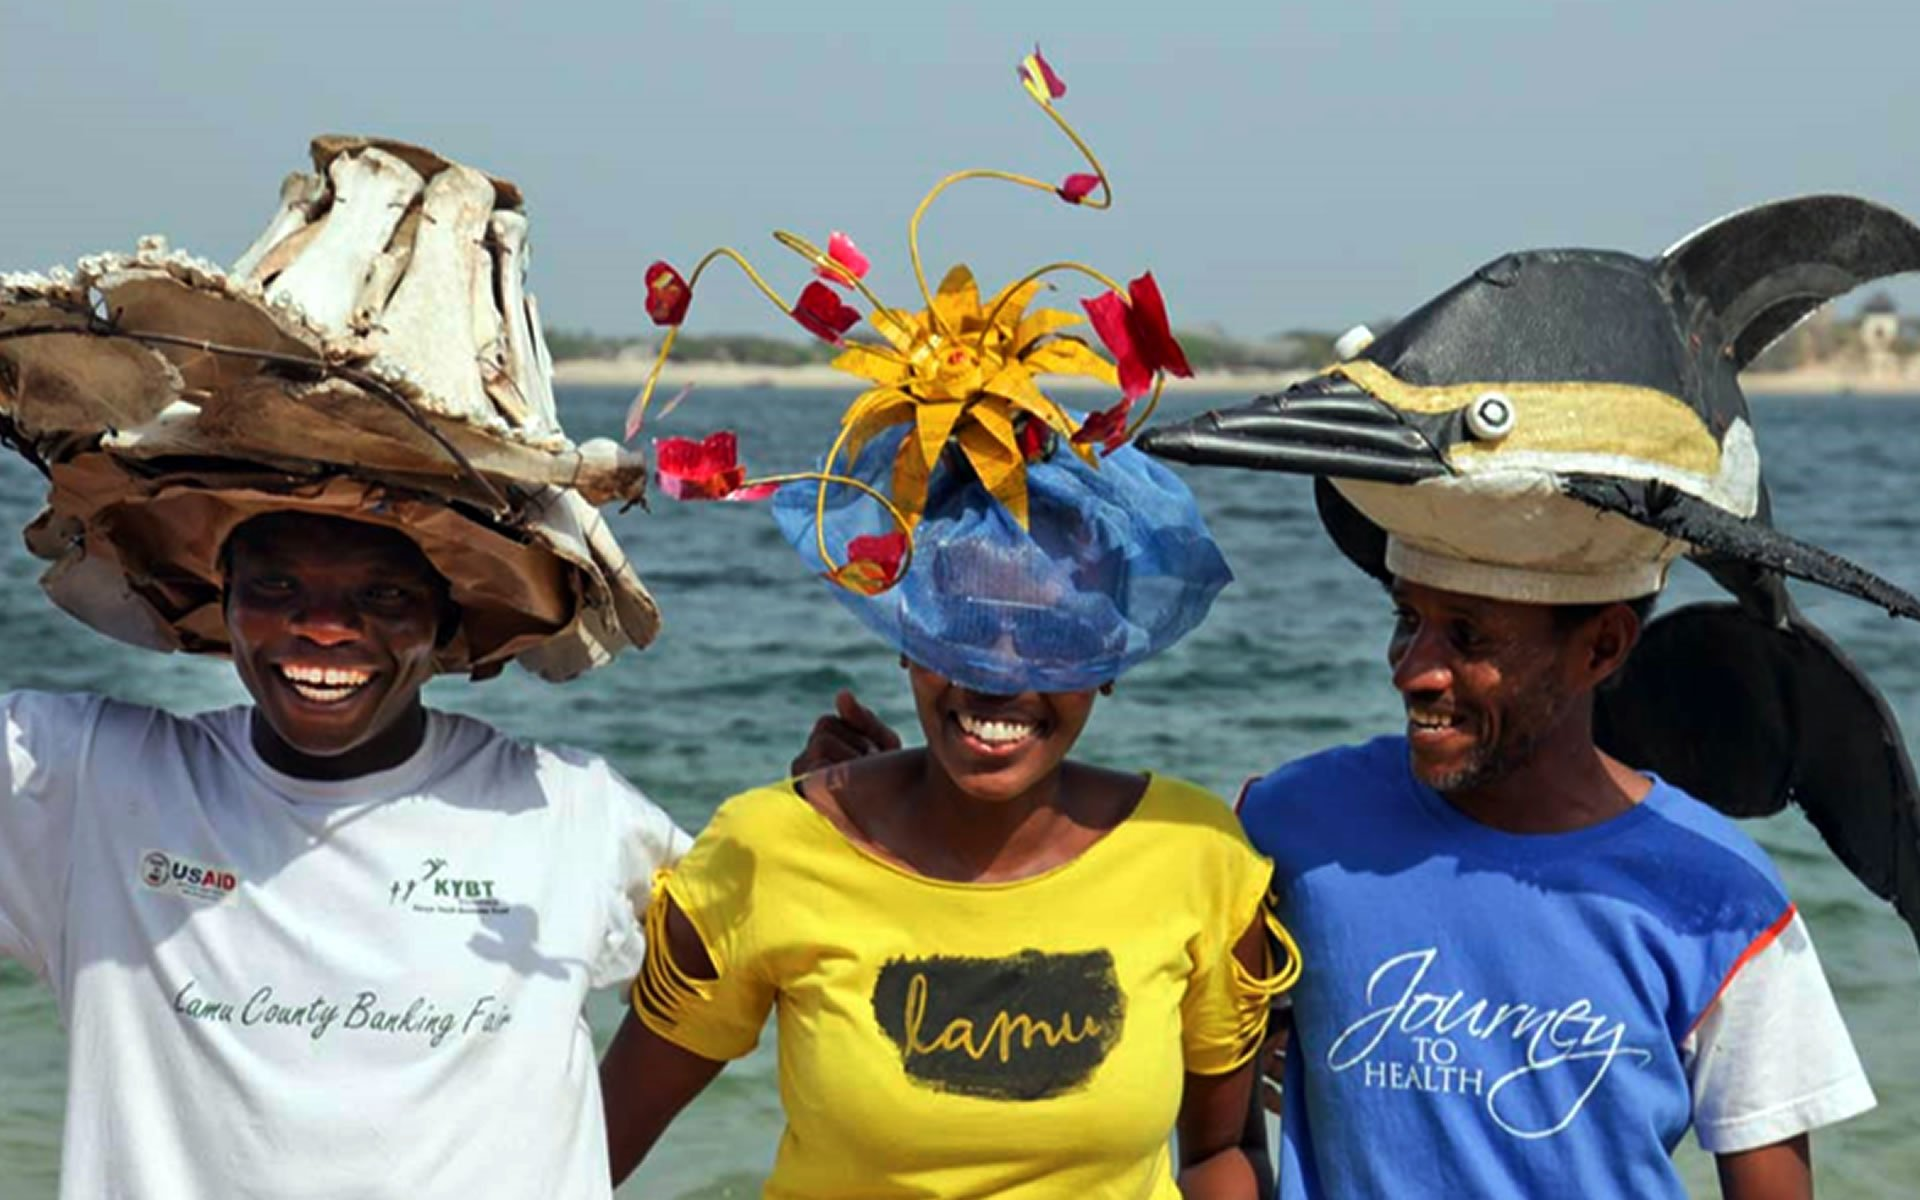 Construction workers at Shela have taken the art of hat making to another level. After years of exploring ingenious ways of shielding themselves from the scorching sun, they are now masters.